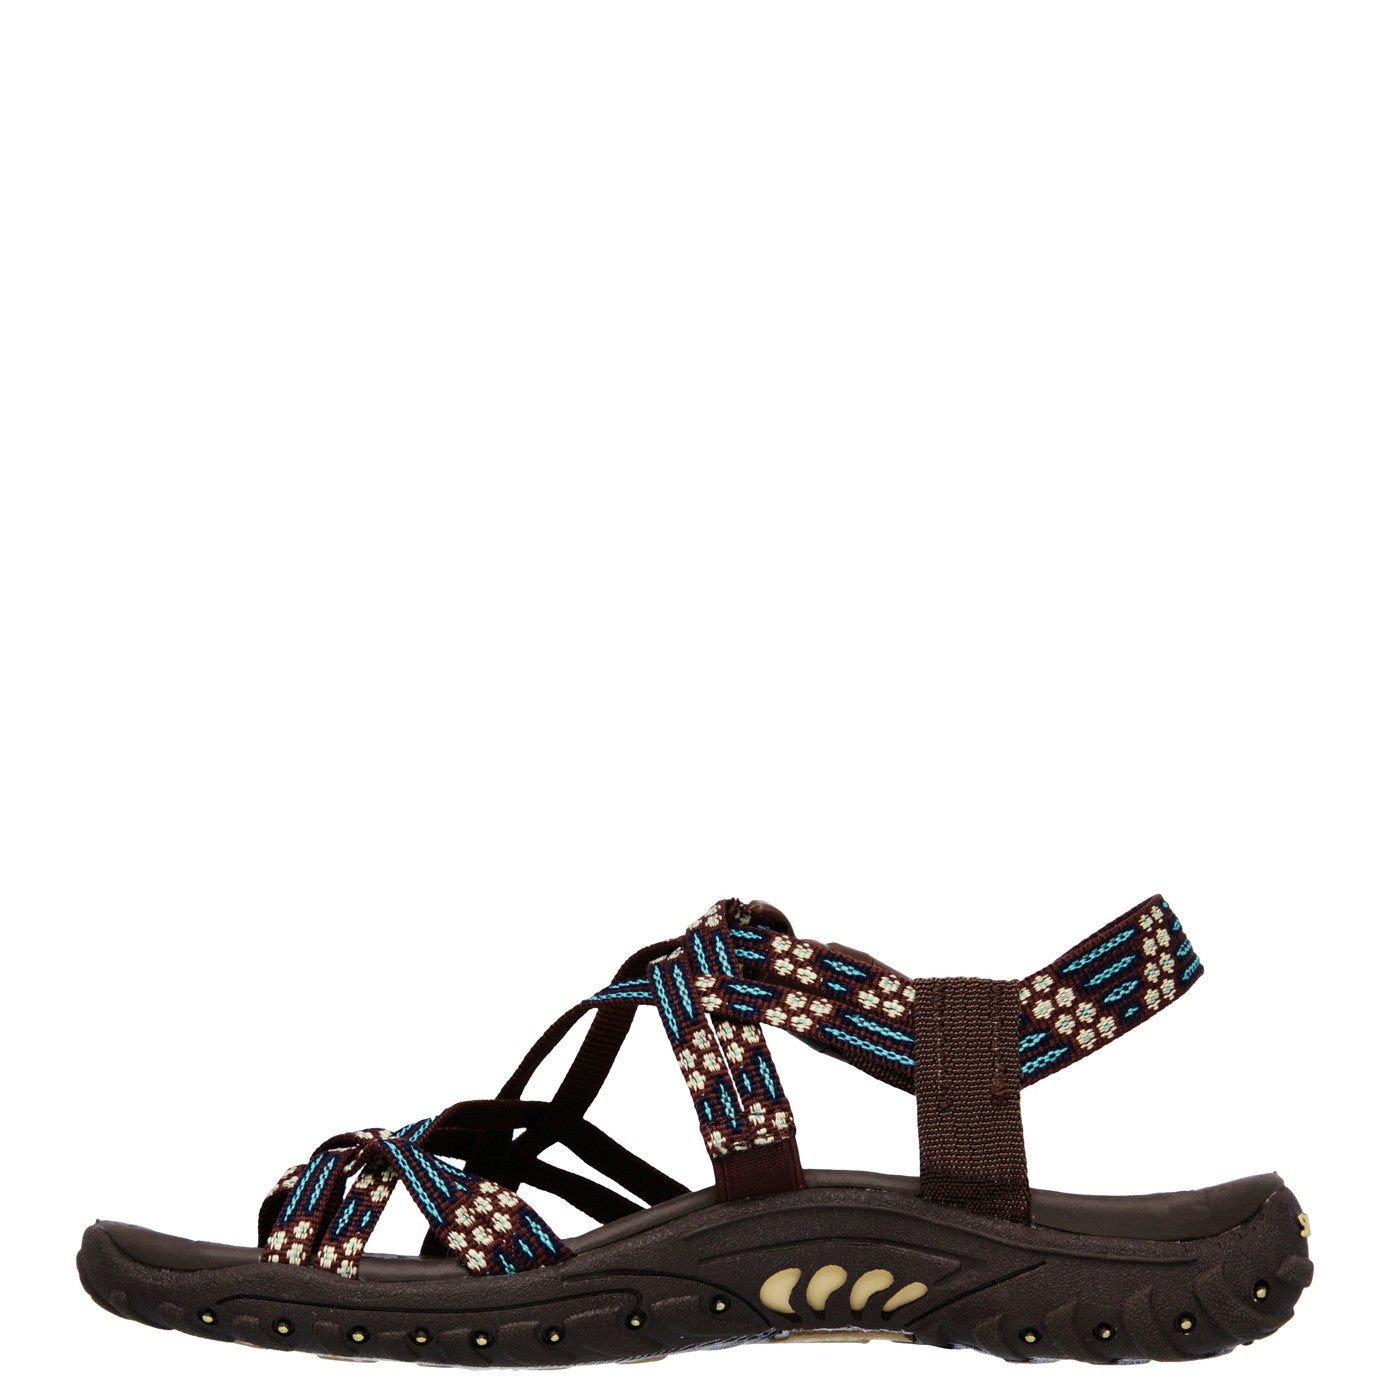 ... Skechers Women's Reggae Loopy Sandal - Chocolate/Blue 40875 ...